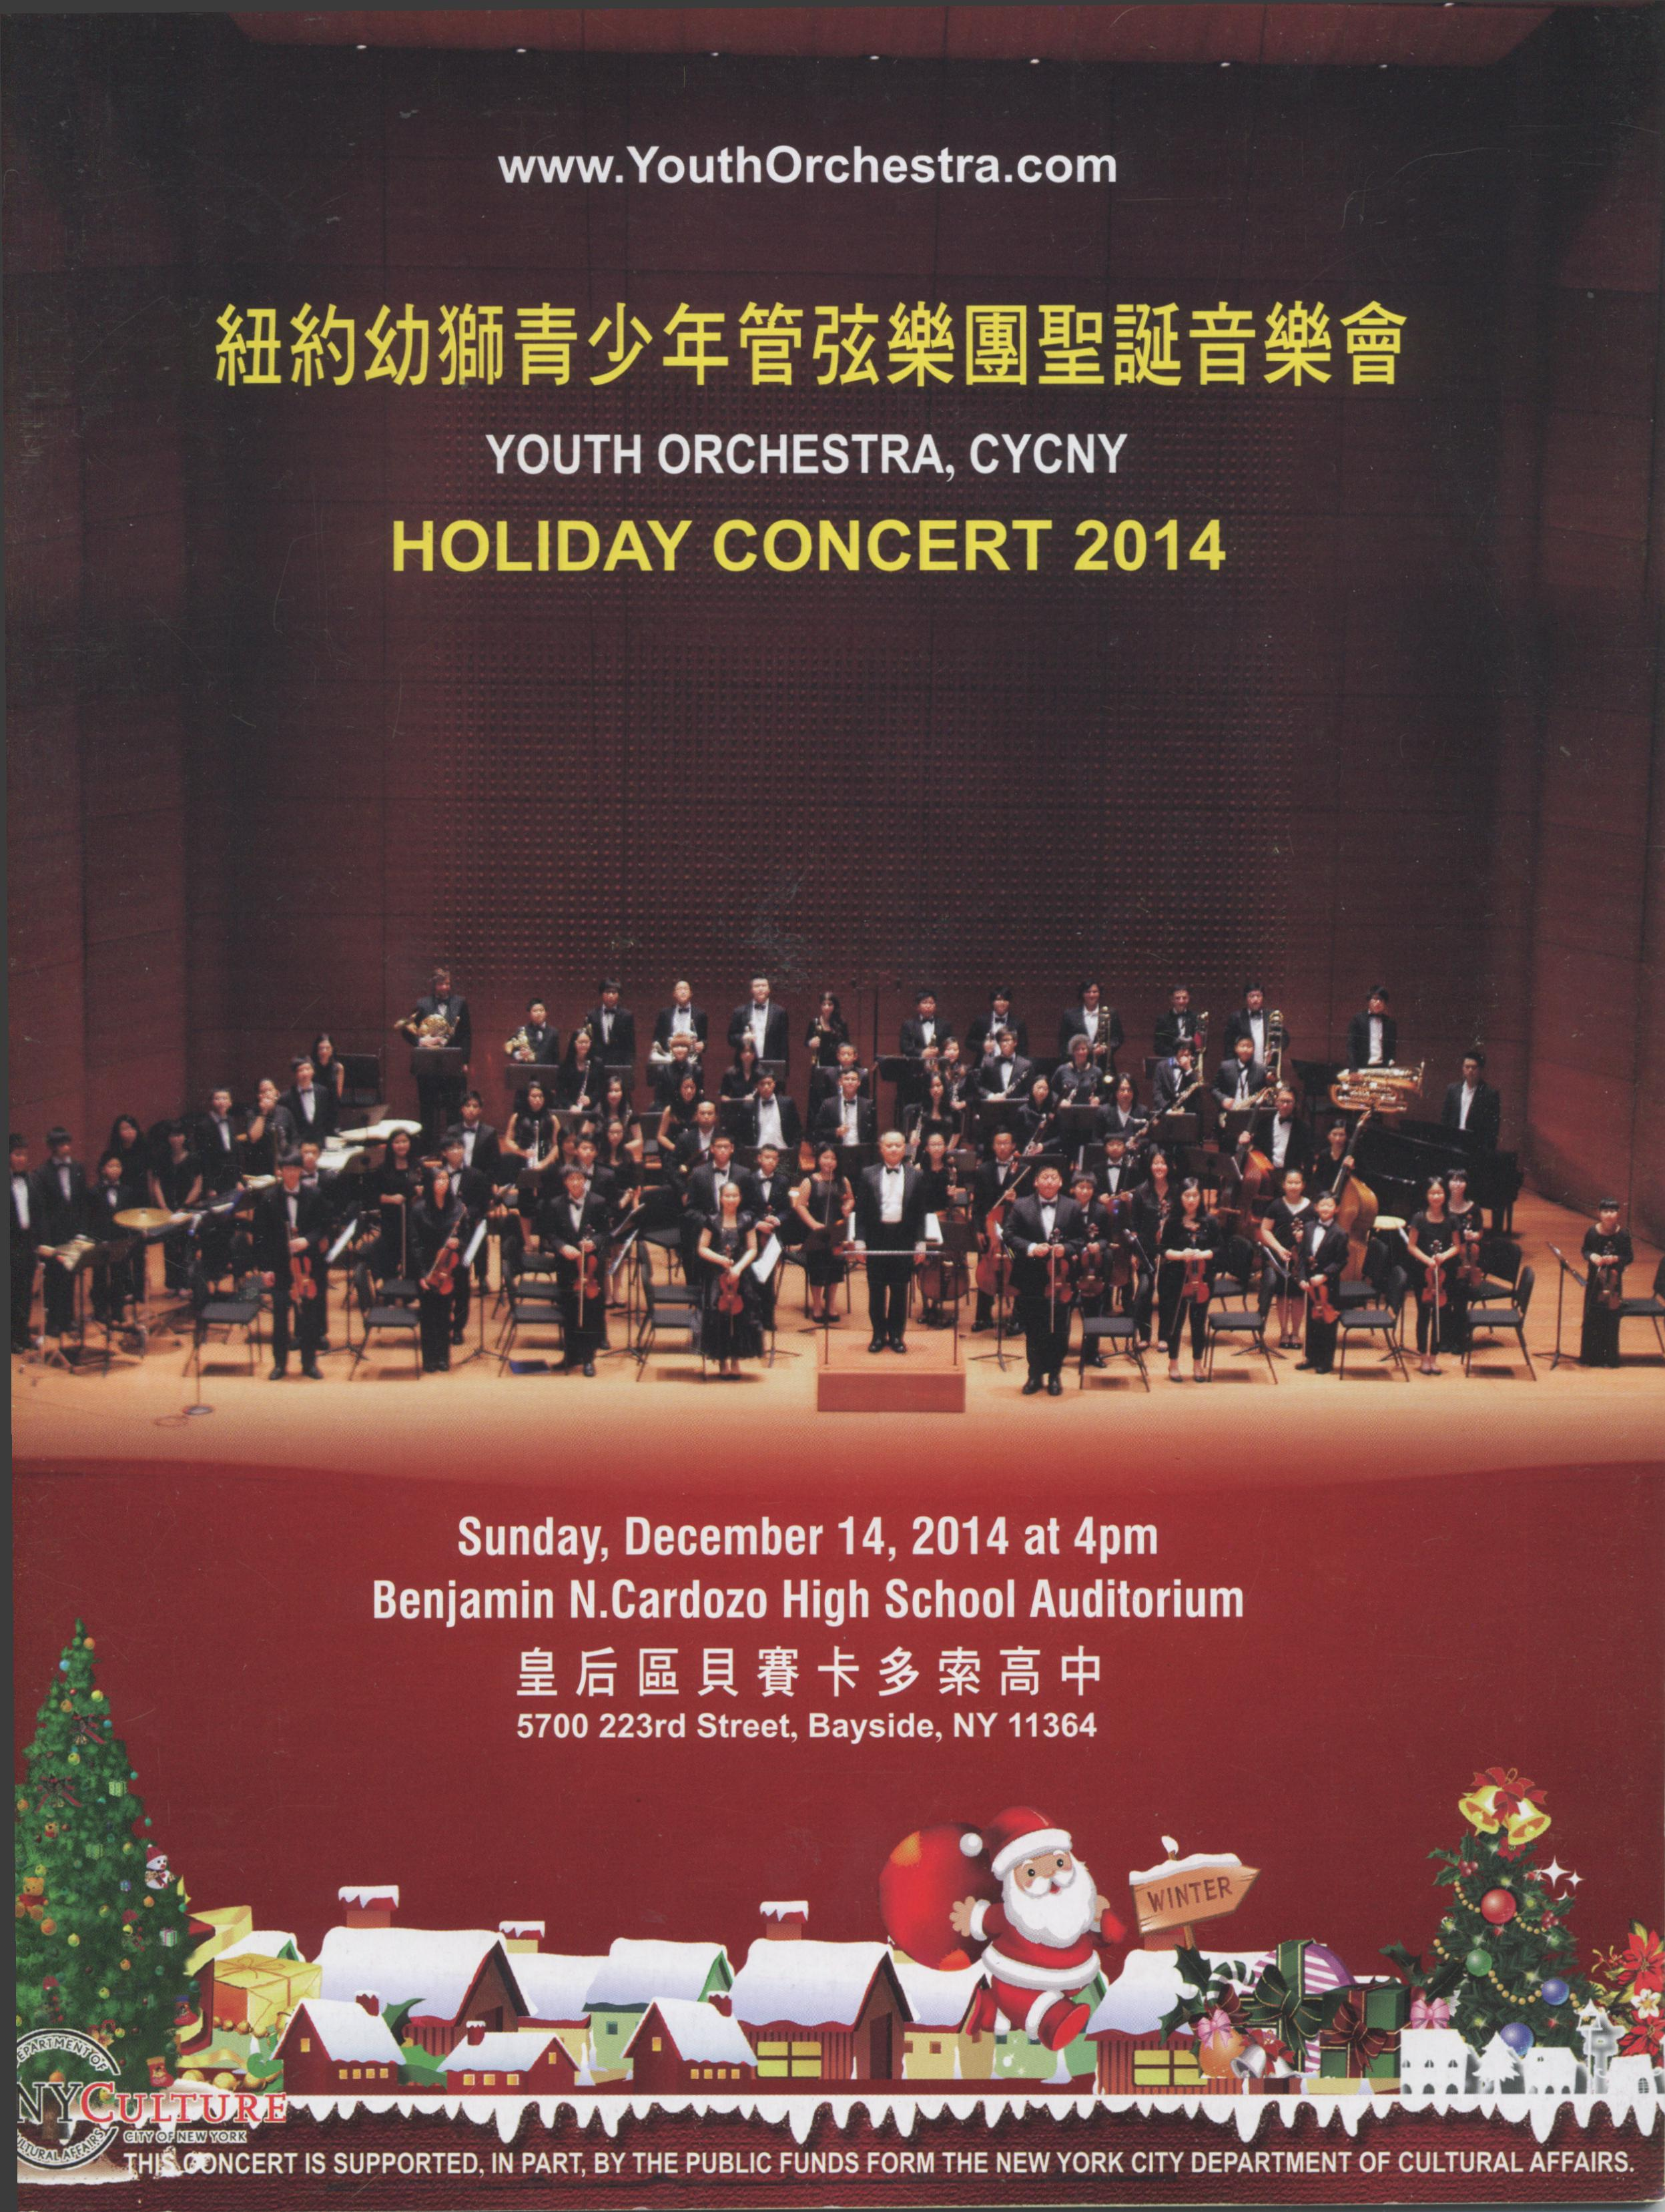 7. Holiday Concert (聖誕音樂會) by Youth Orchestra, CYCNY (紐約幼獅青少年管弦樂團), New York, NY on 2002, 2003, 2004, 2006, 2007, 2010, 2011, 2012, 2013, 2014, 2015, 2016, 2017